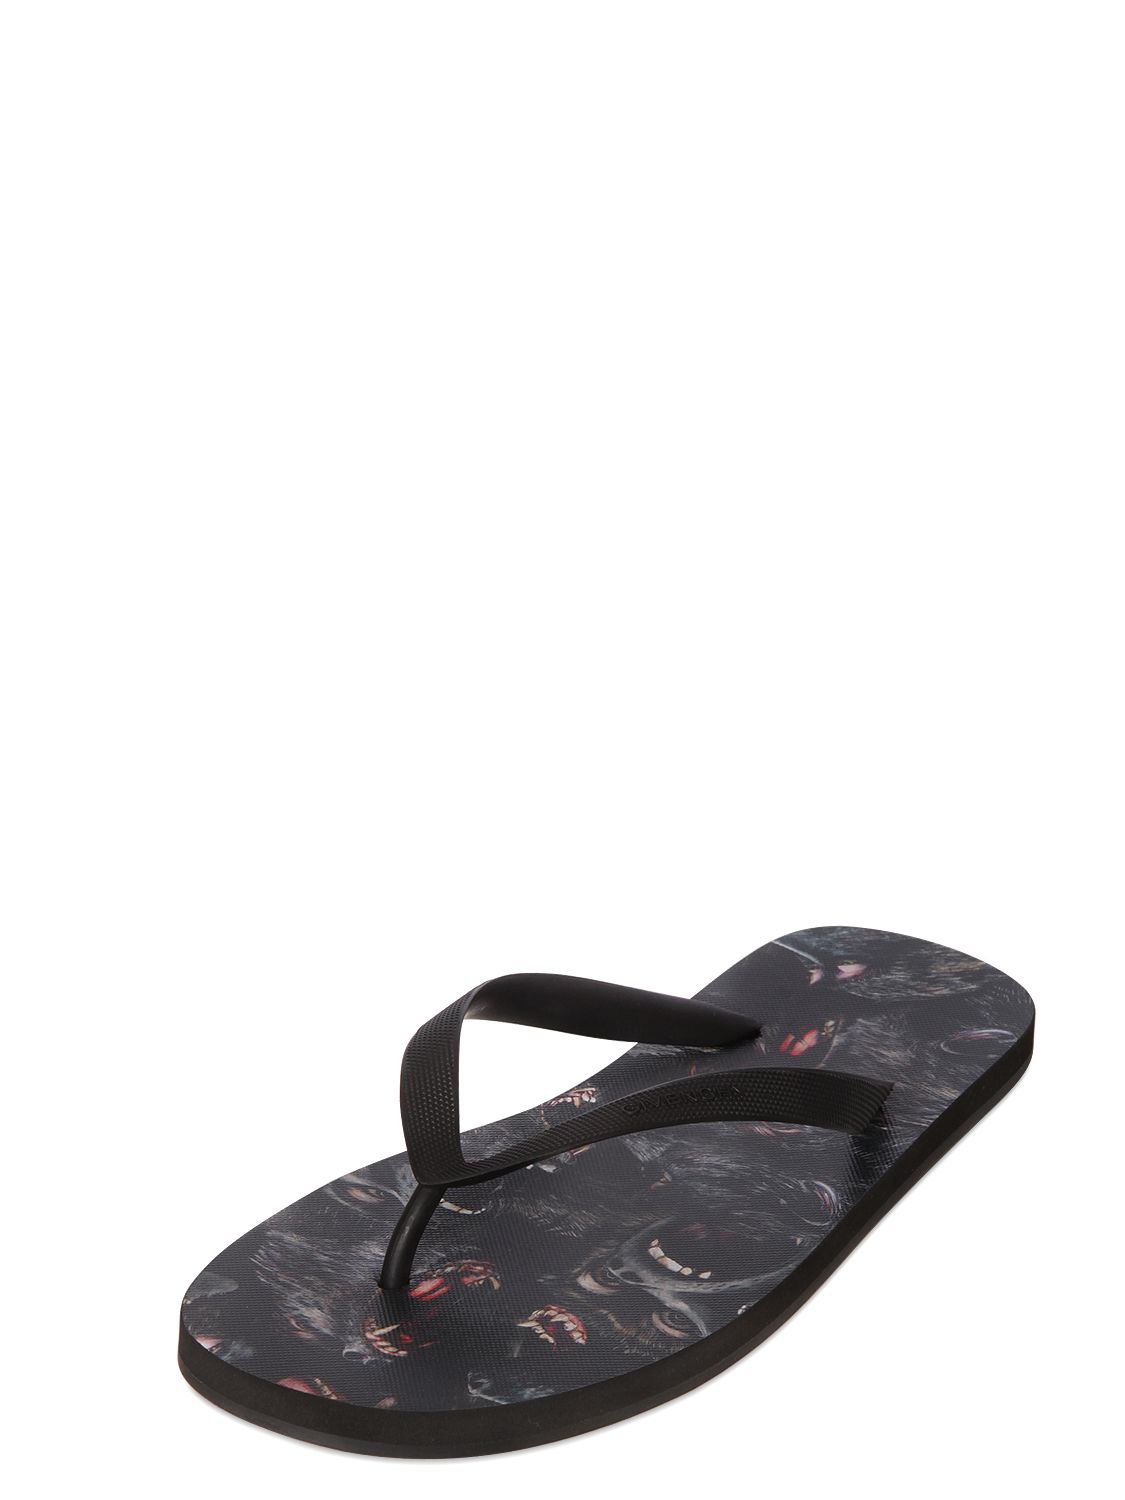 a472a12a8bc7 Lyst - Givenchy Monkeys Printed Insole Flip Flops in Black for Men